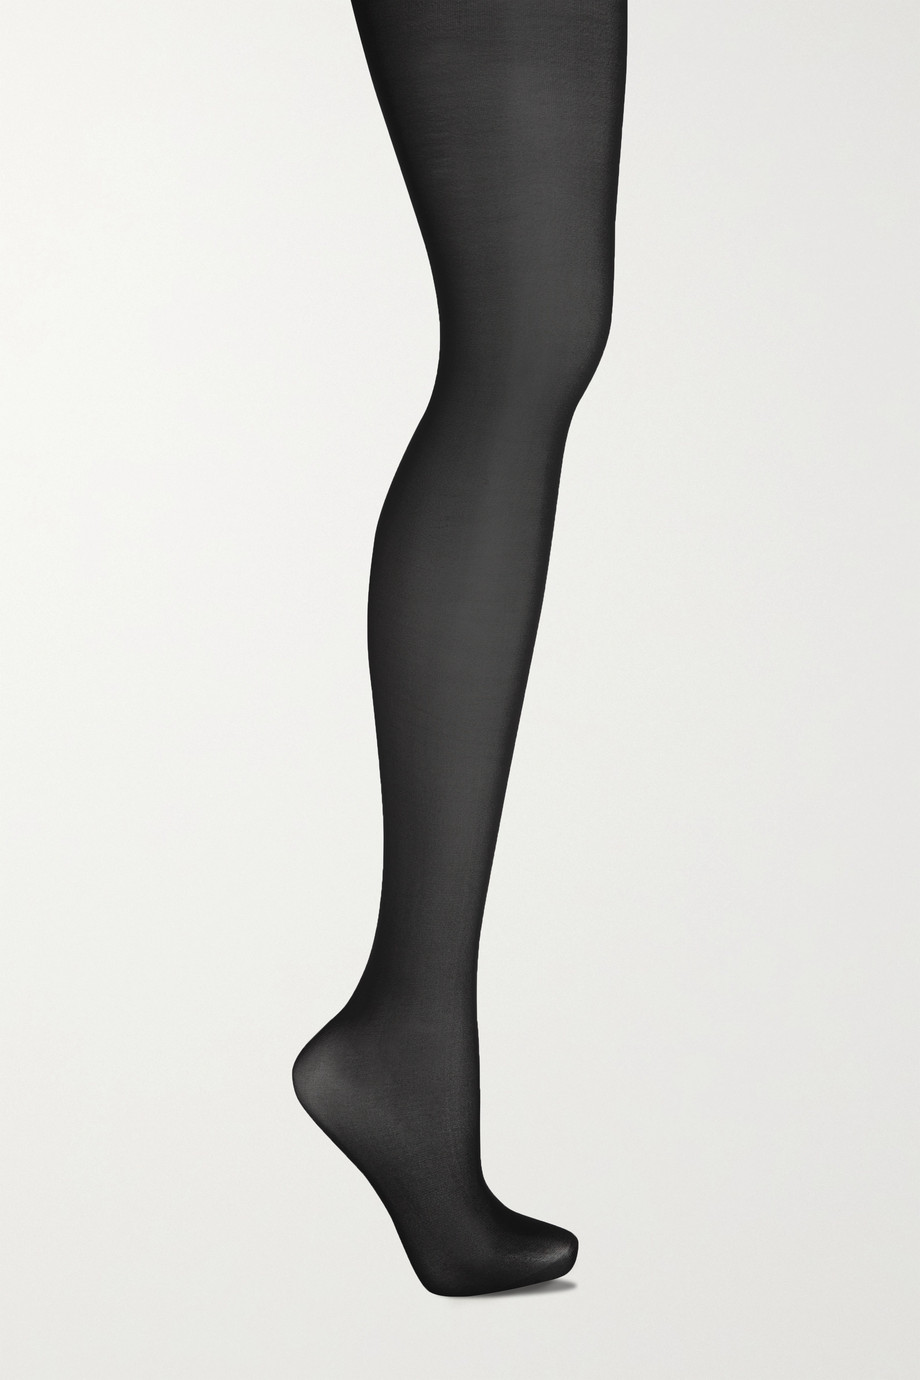 Wolford Neon 40 denier tights